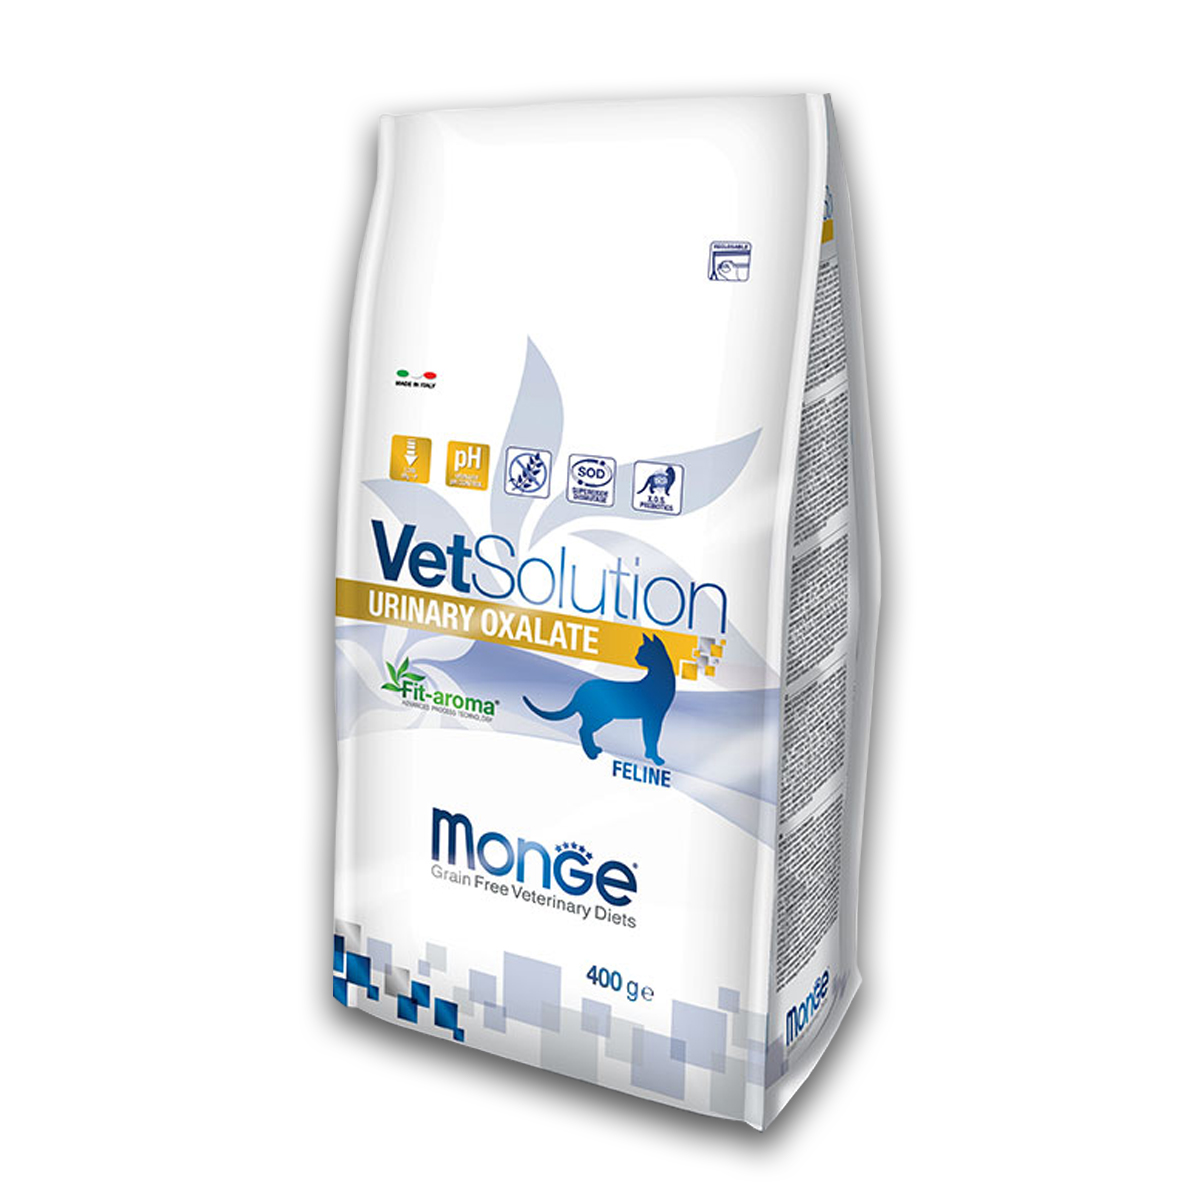 Monge Vetsolution Urinary Oxalate Feline 400 gr